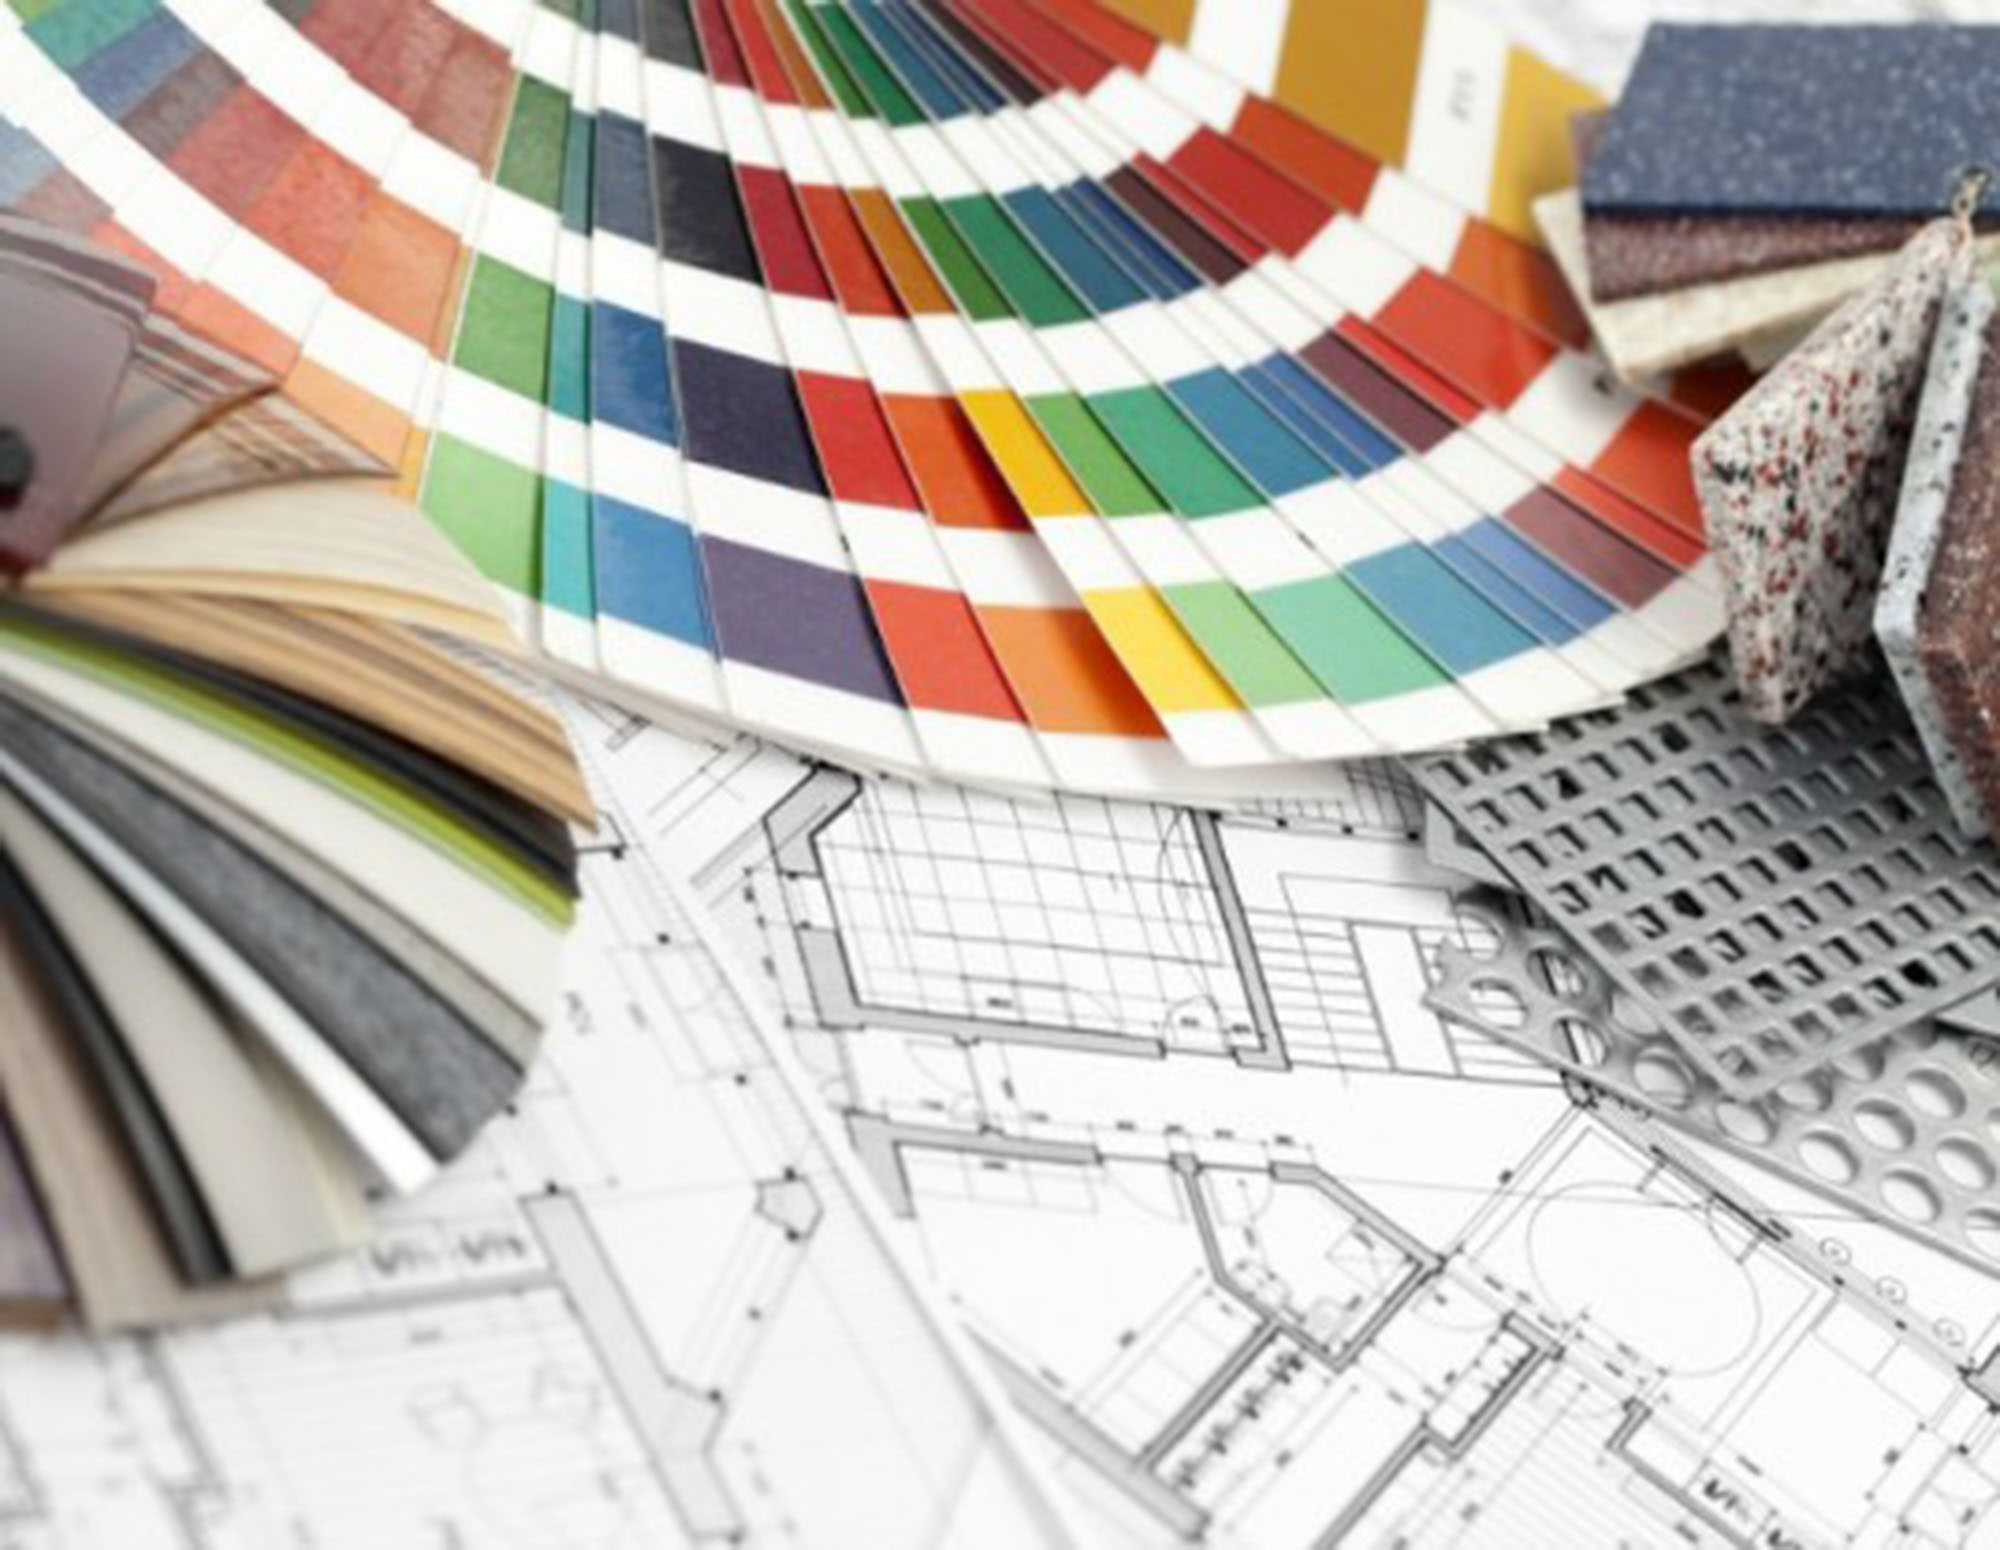 How to become an interior designer for Becoming an interior designer